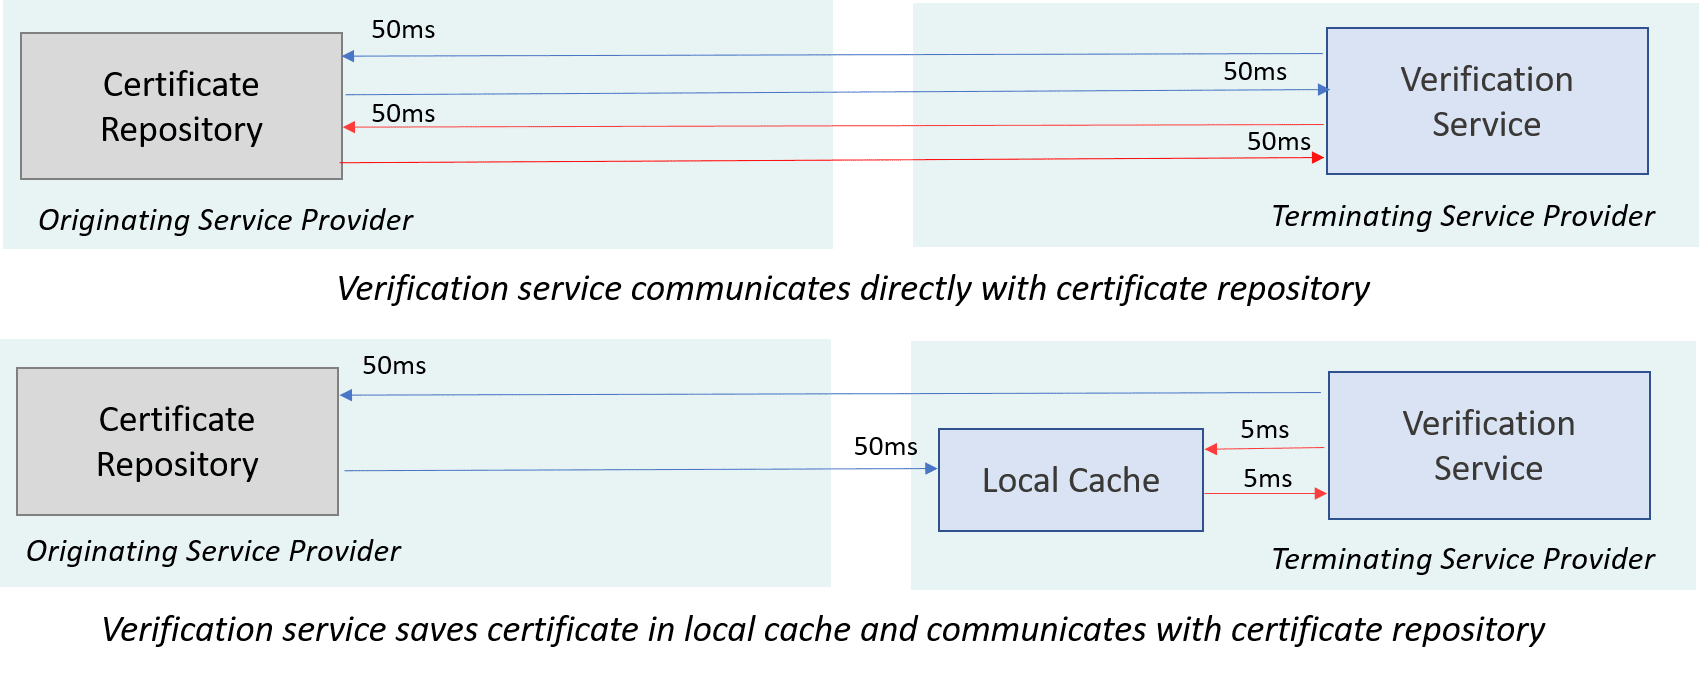 Certificate caching reduces latency for fetching certificates